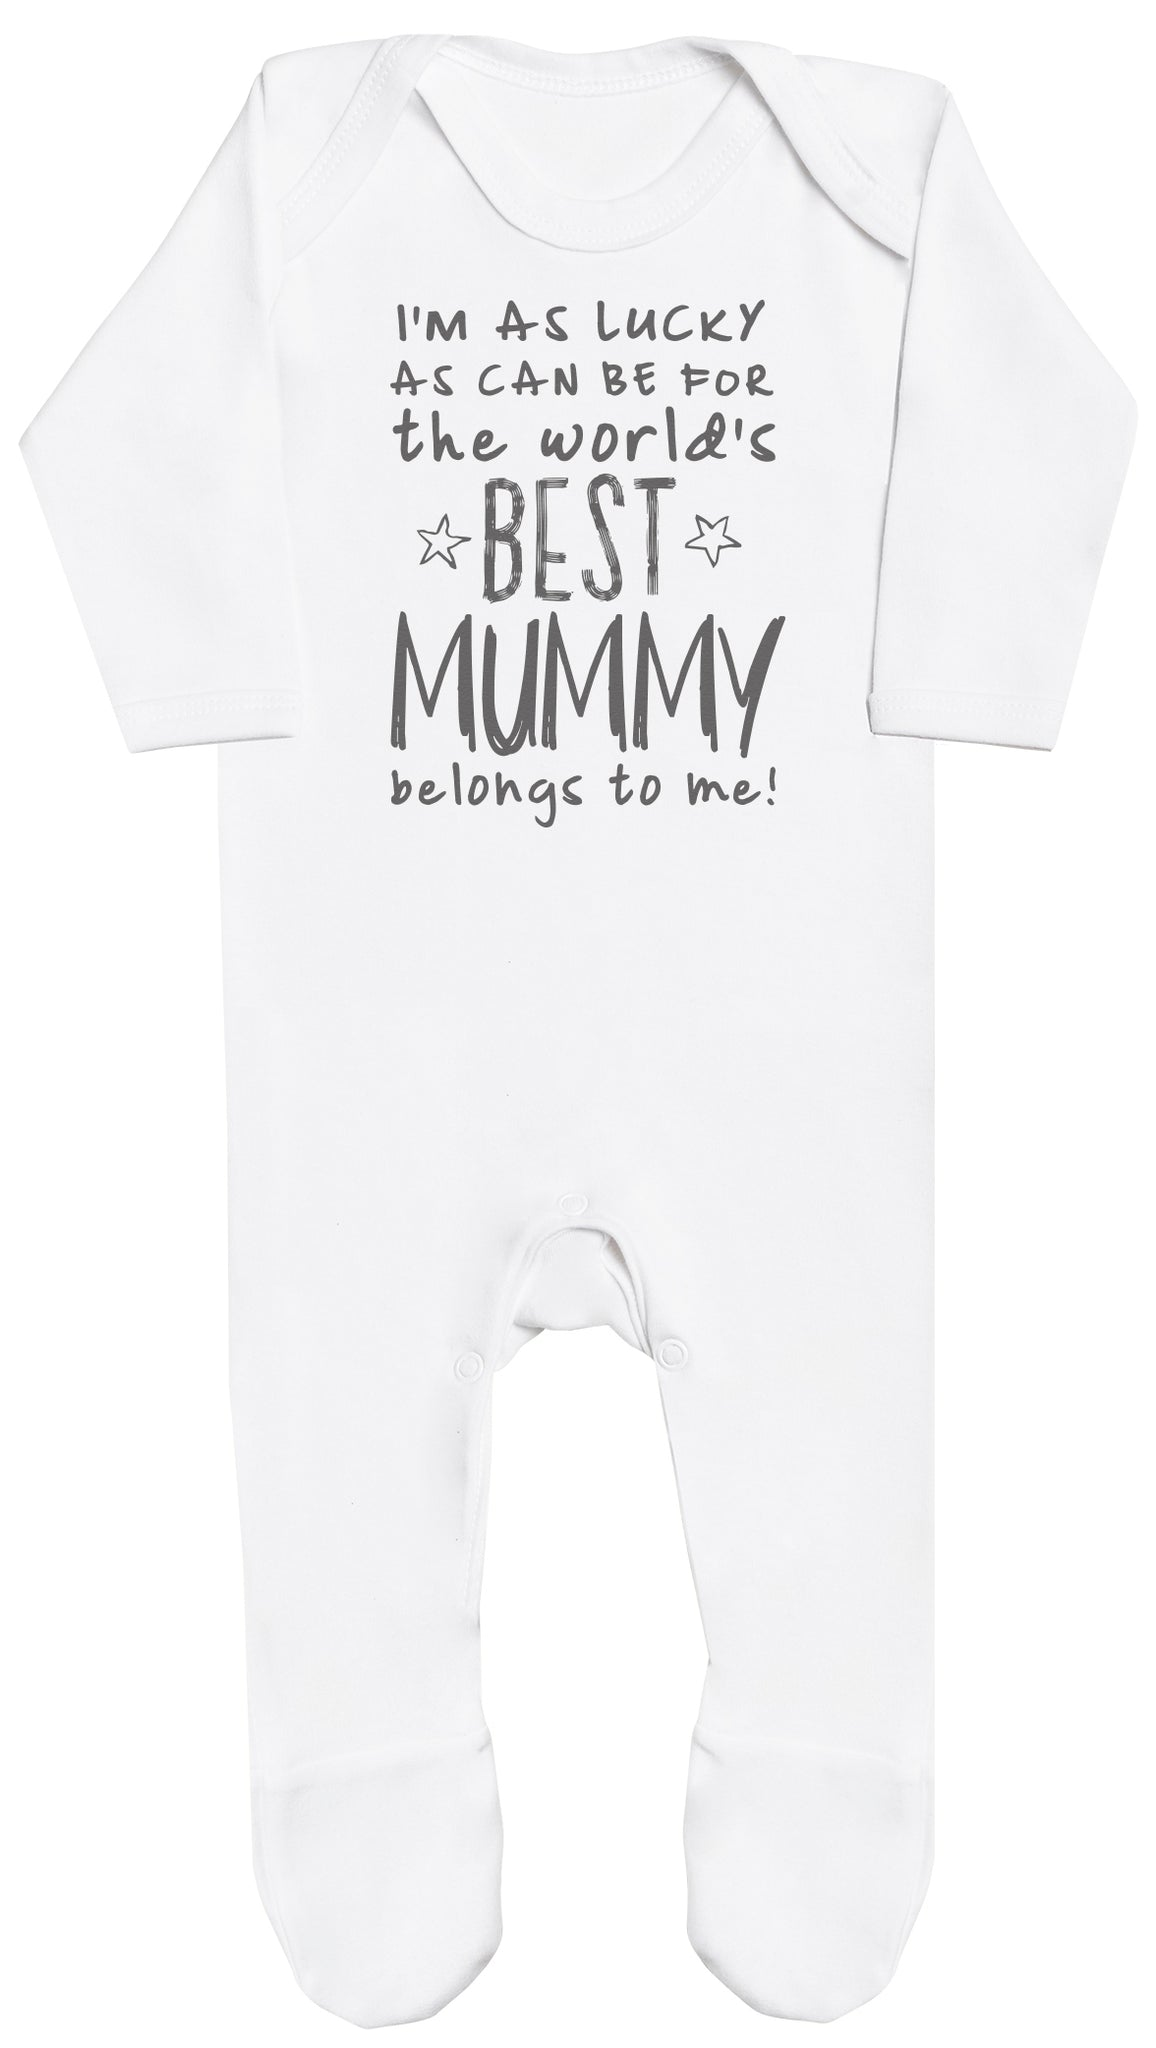 I'm As Lucky As Can Be Best Mummy belongs to me! Baby Romper